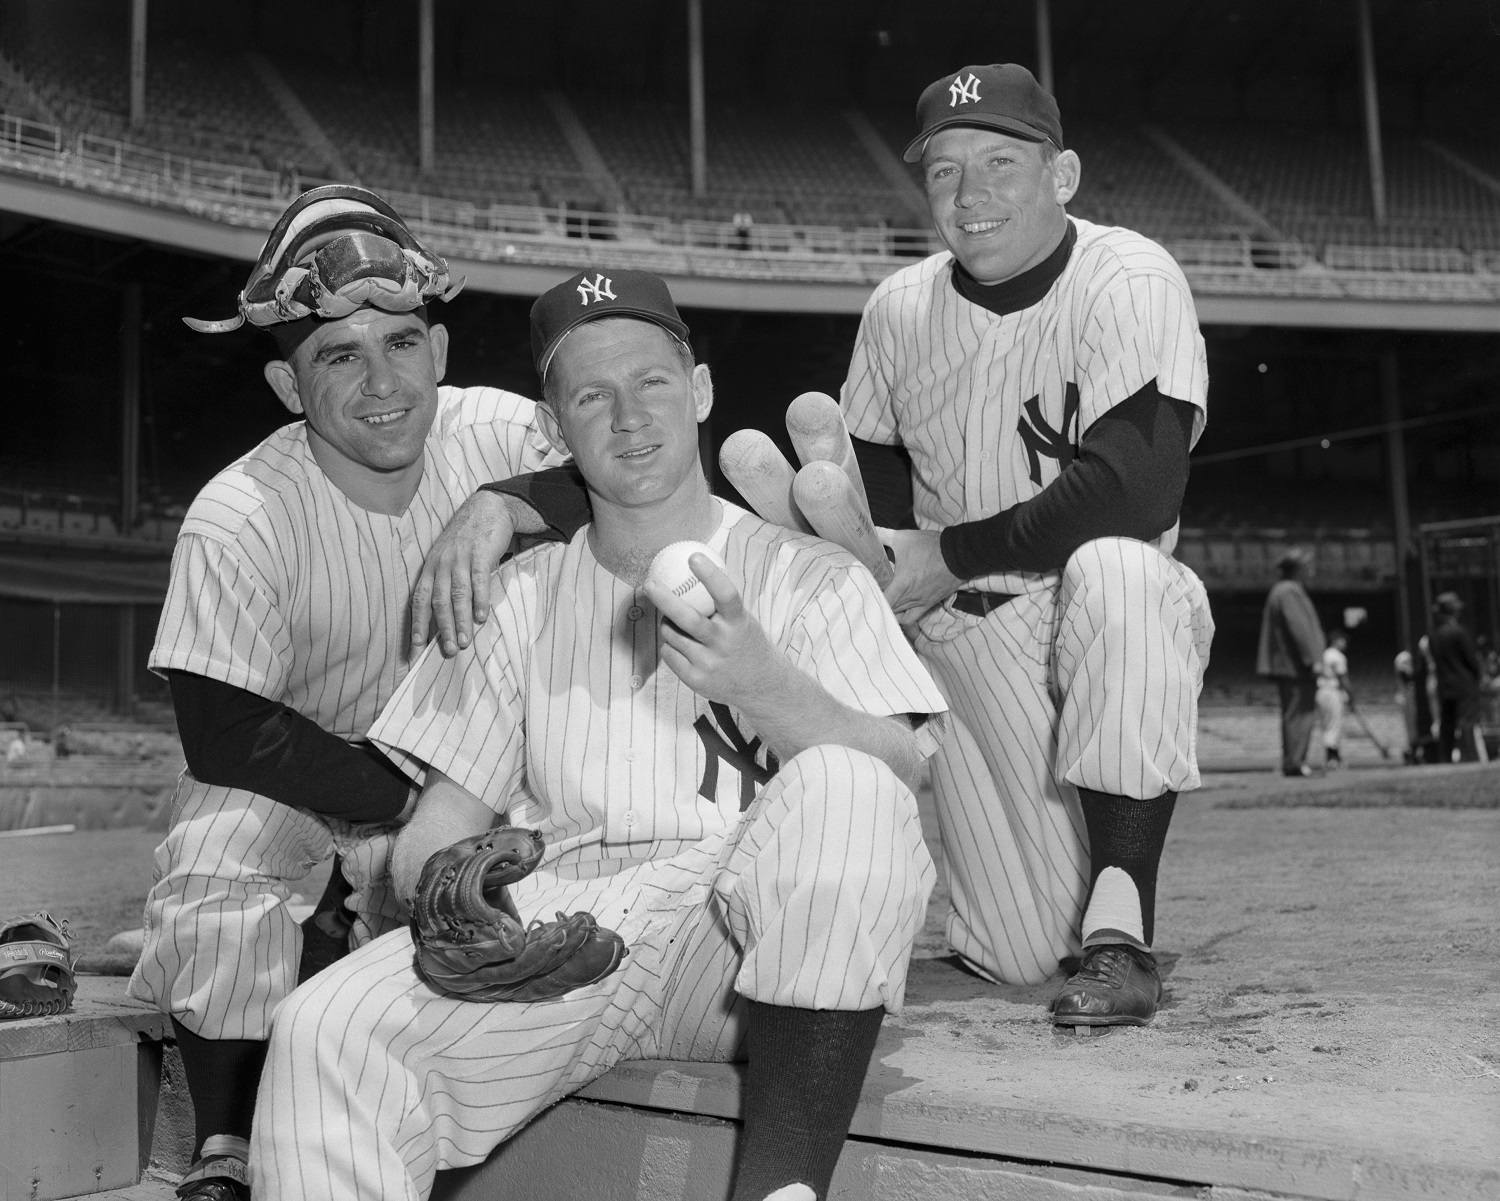 Yogi Berra; Whitey Ford, and Mickey Mantle were fixtures on some great New York Yankees teams. | Herb Scharfman/Getty Images